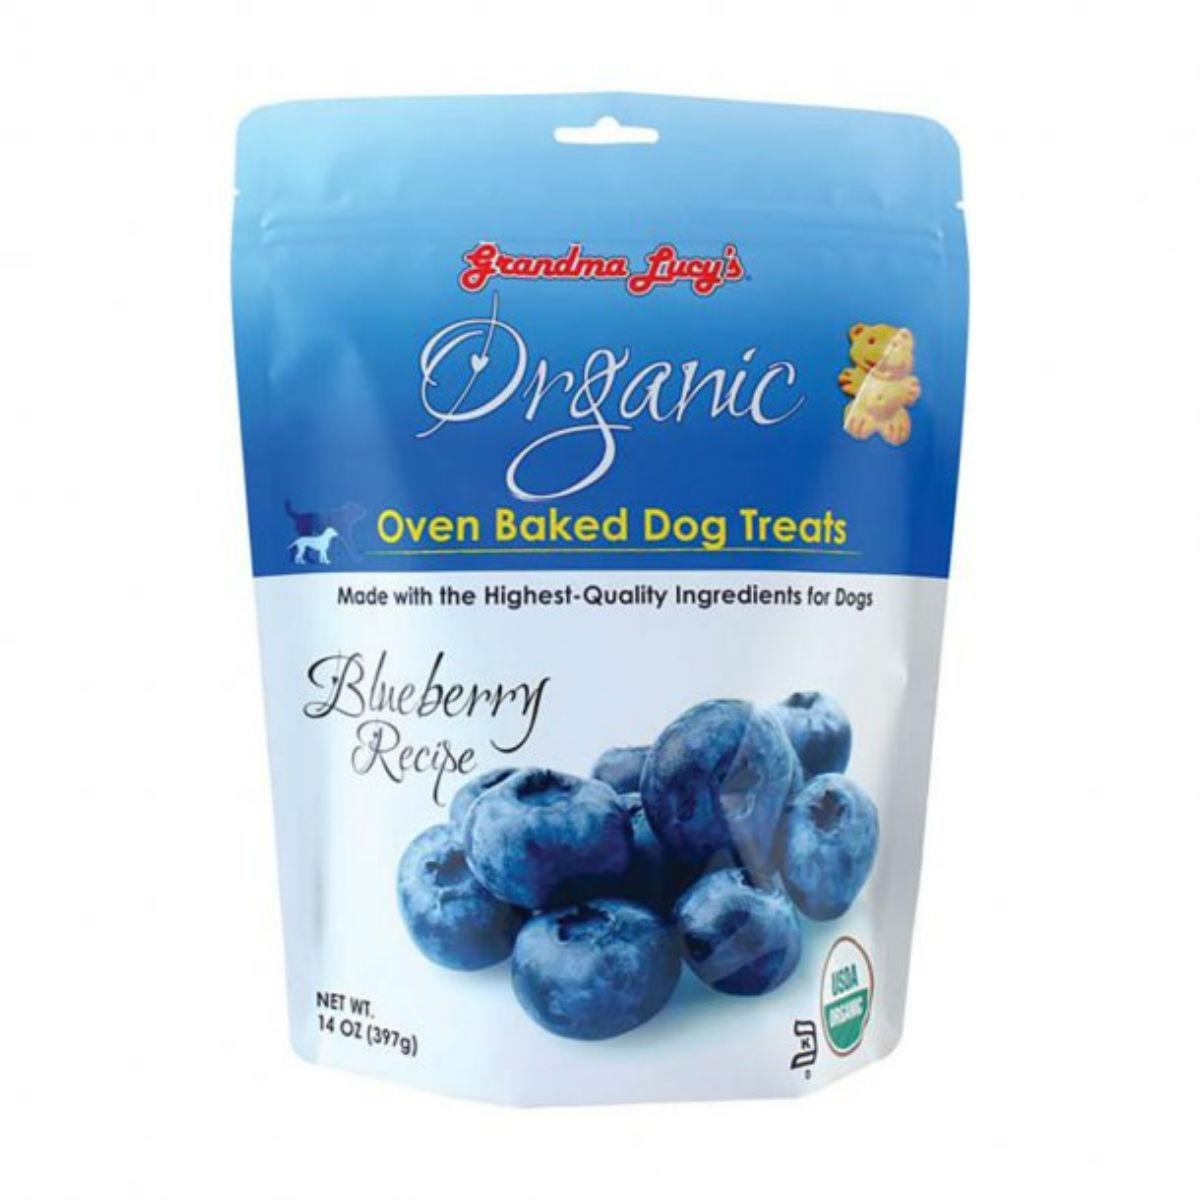 Grandma Lucy's Organic Oven Baked Dog Treat - Blueberry